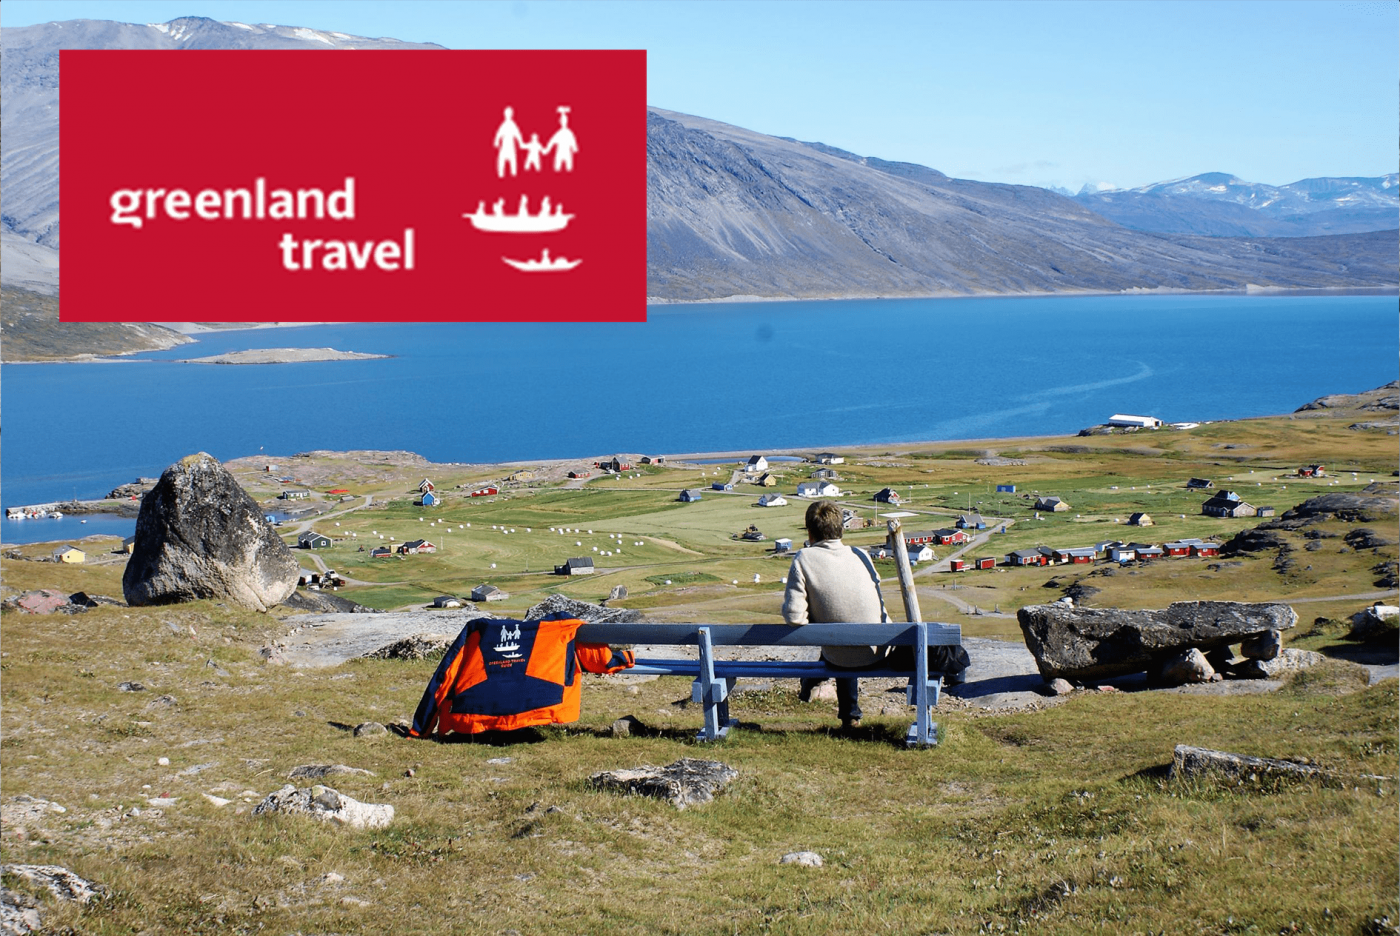 Greenland Travel: All in one: The grand tour of Greenland